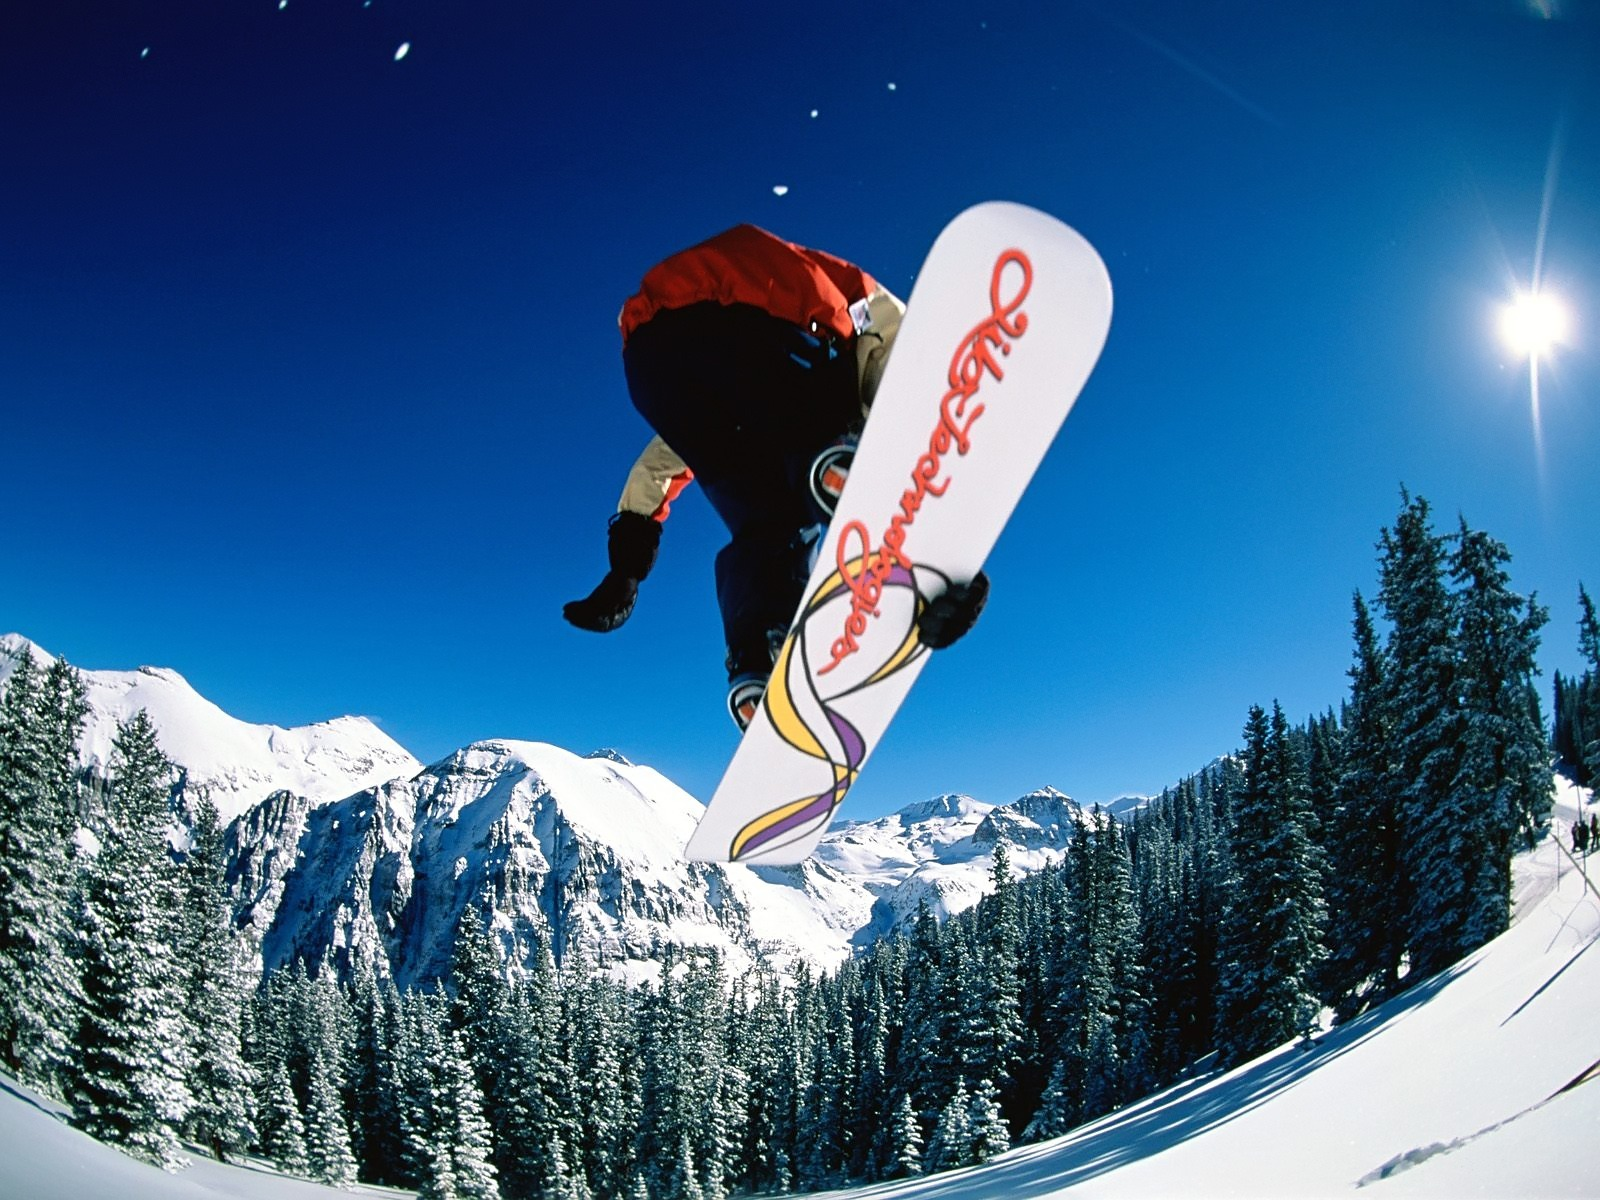 Snowboarding jump Wallpaper Snowboarding Sports Wallpapers